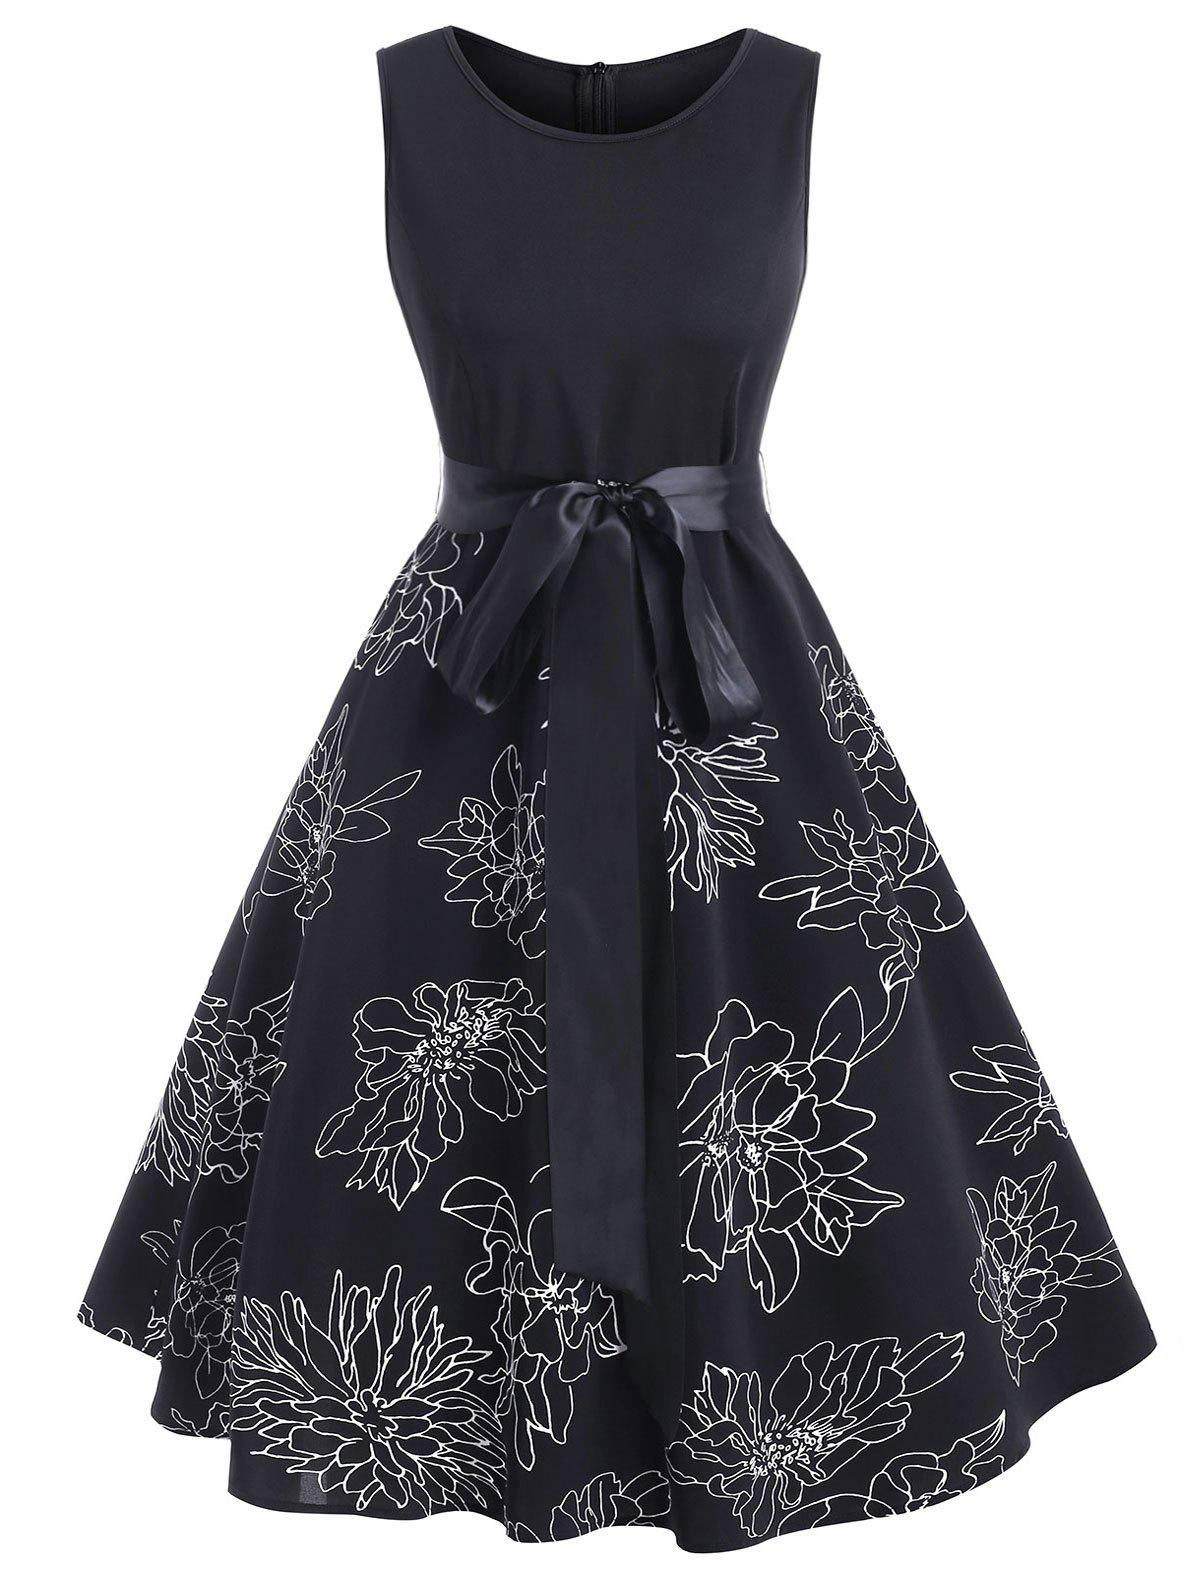 Unique Floral Print Belted Sleeveless Knee Length Dress